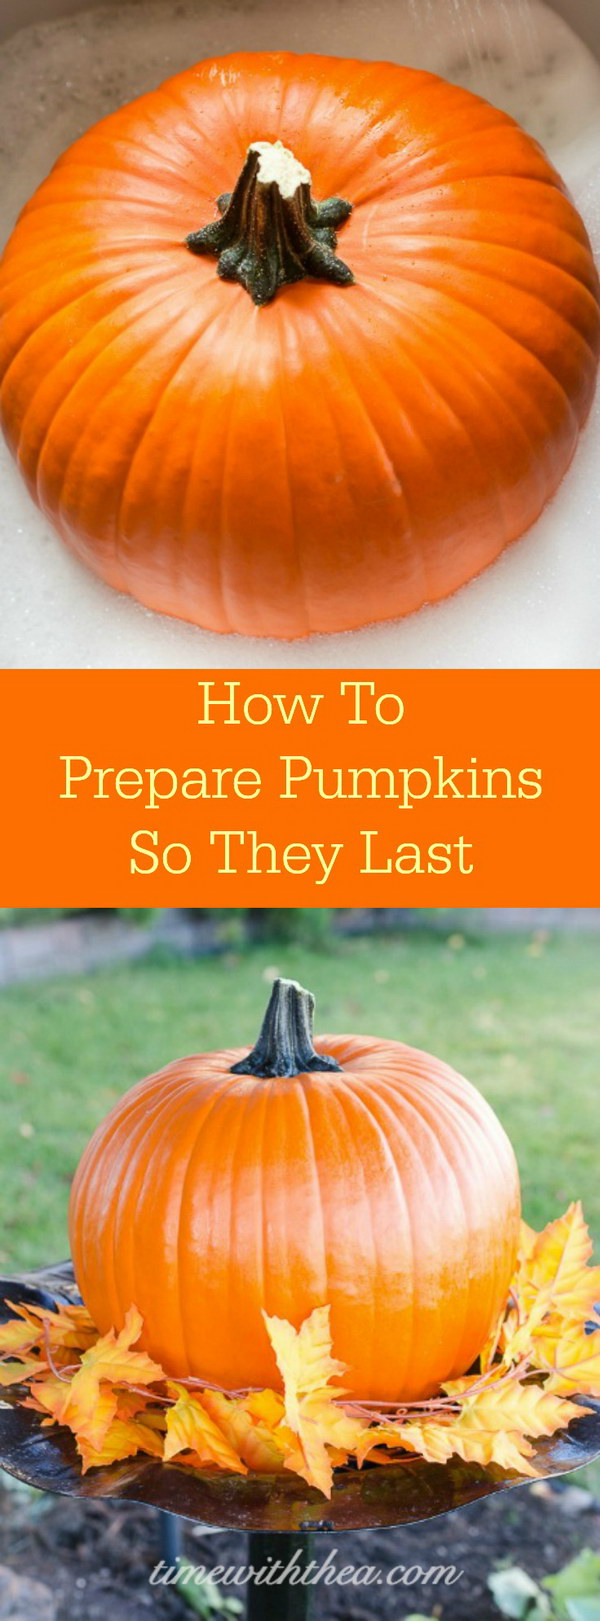 How To Prepare Pumpkins So They Last.